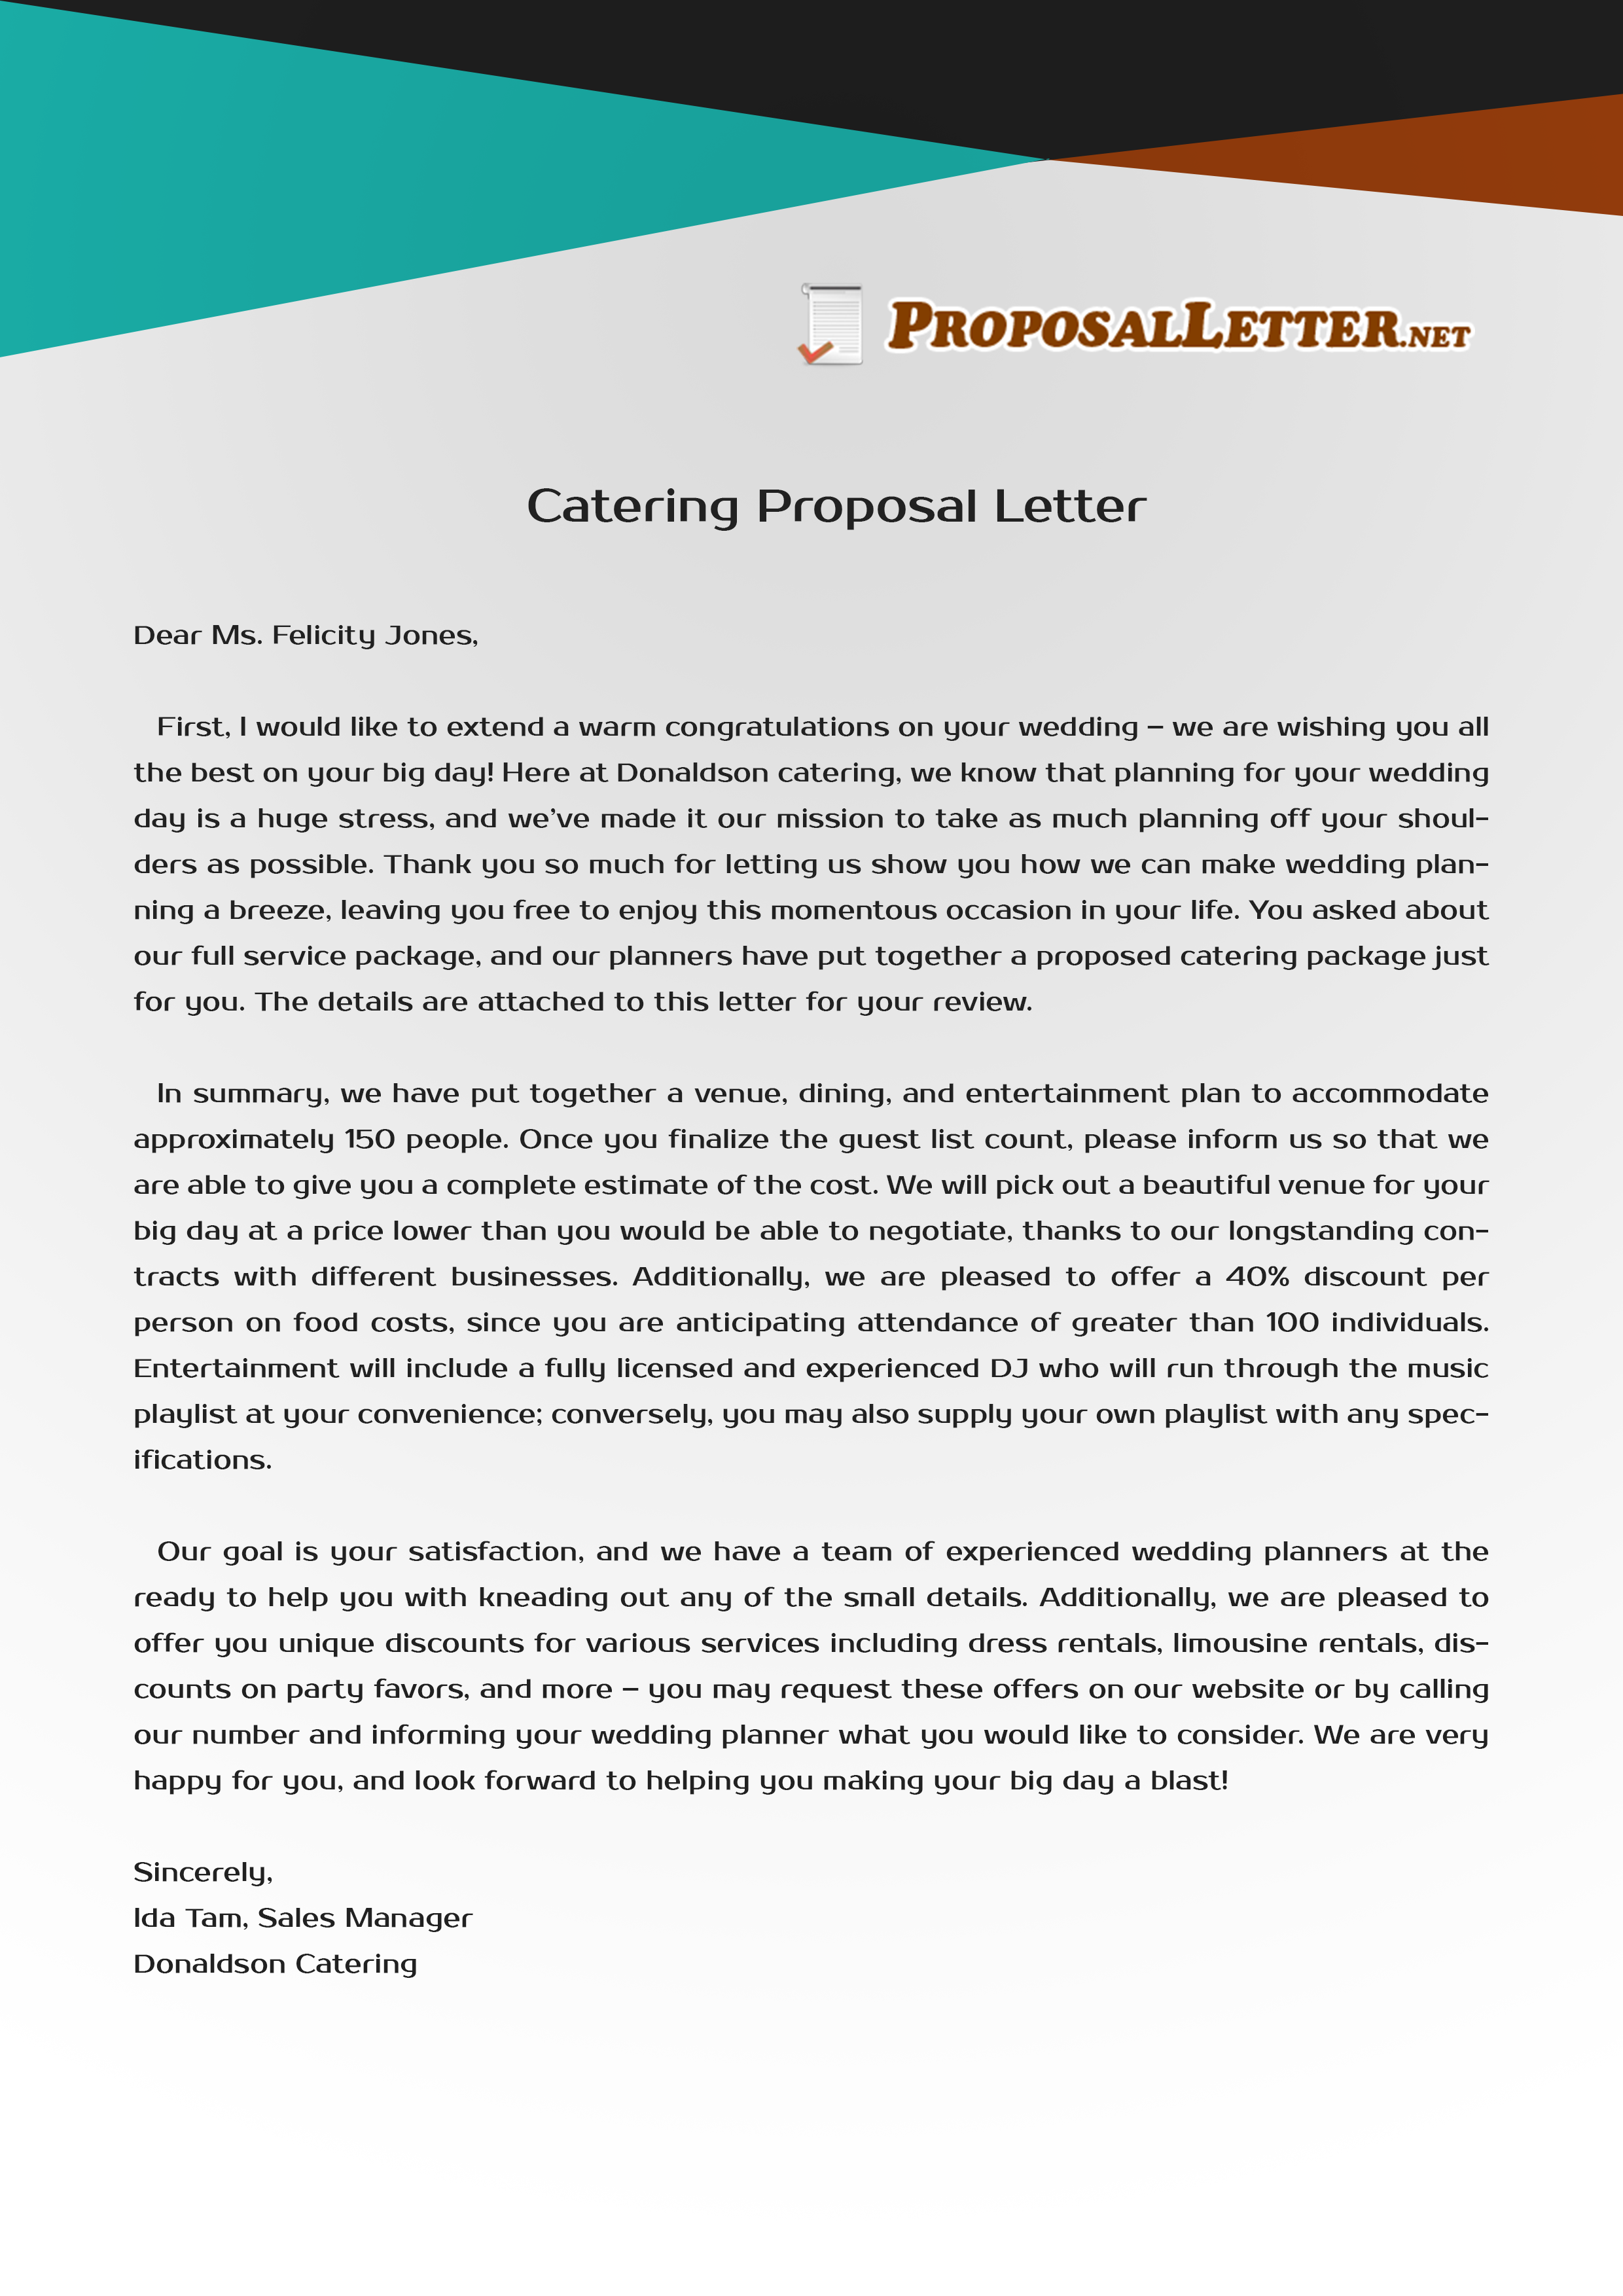 Pin by Proposal Letter Samples USA on Catering Proposal